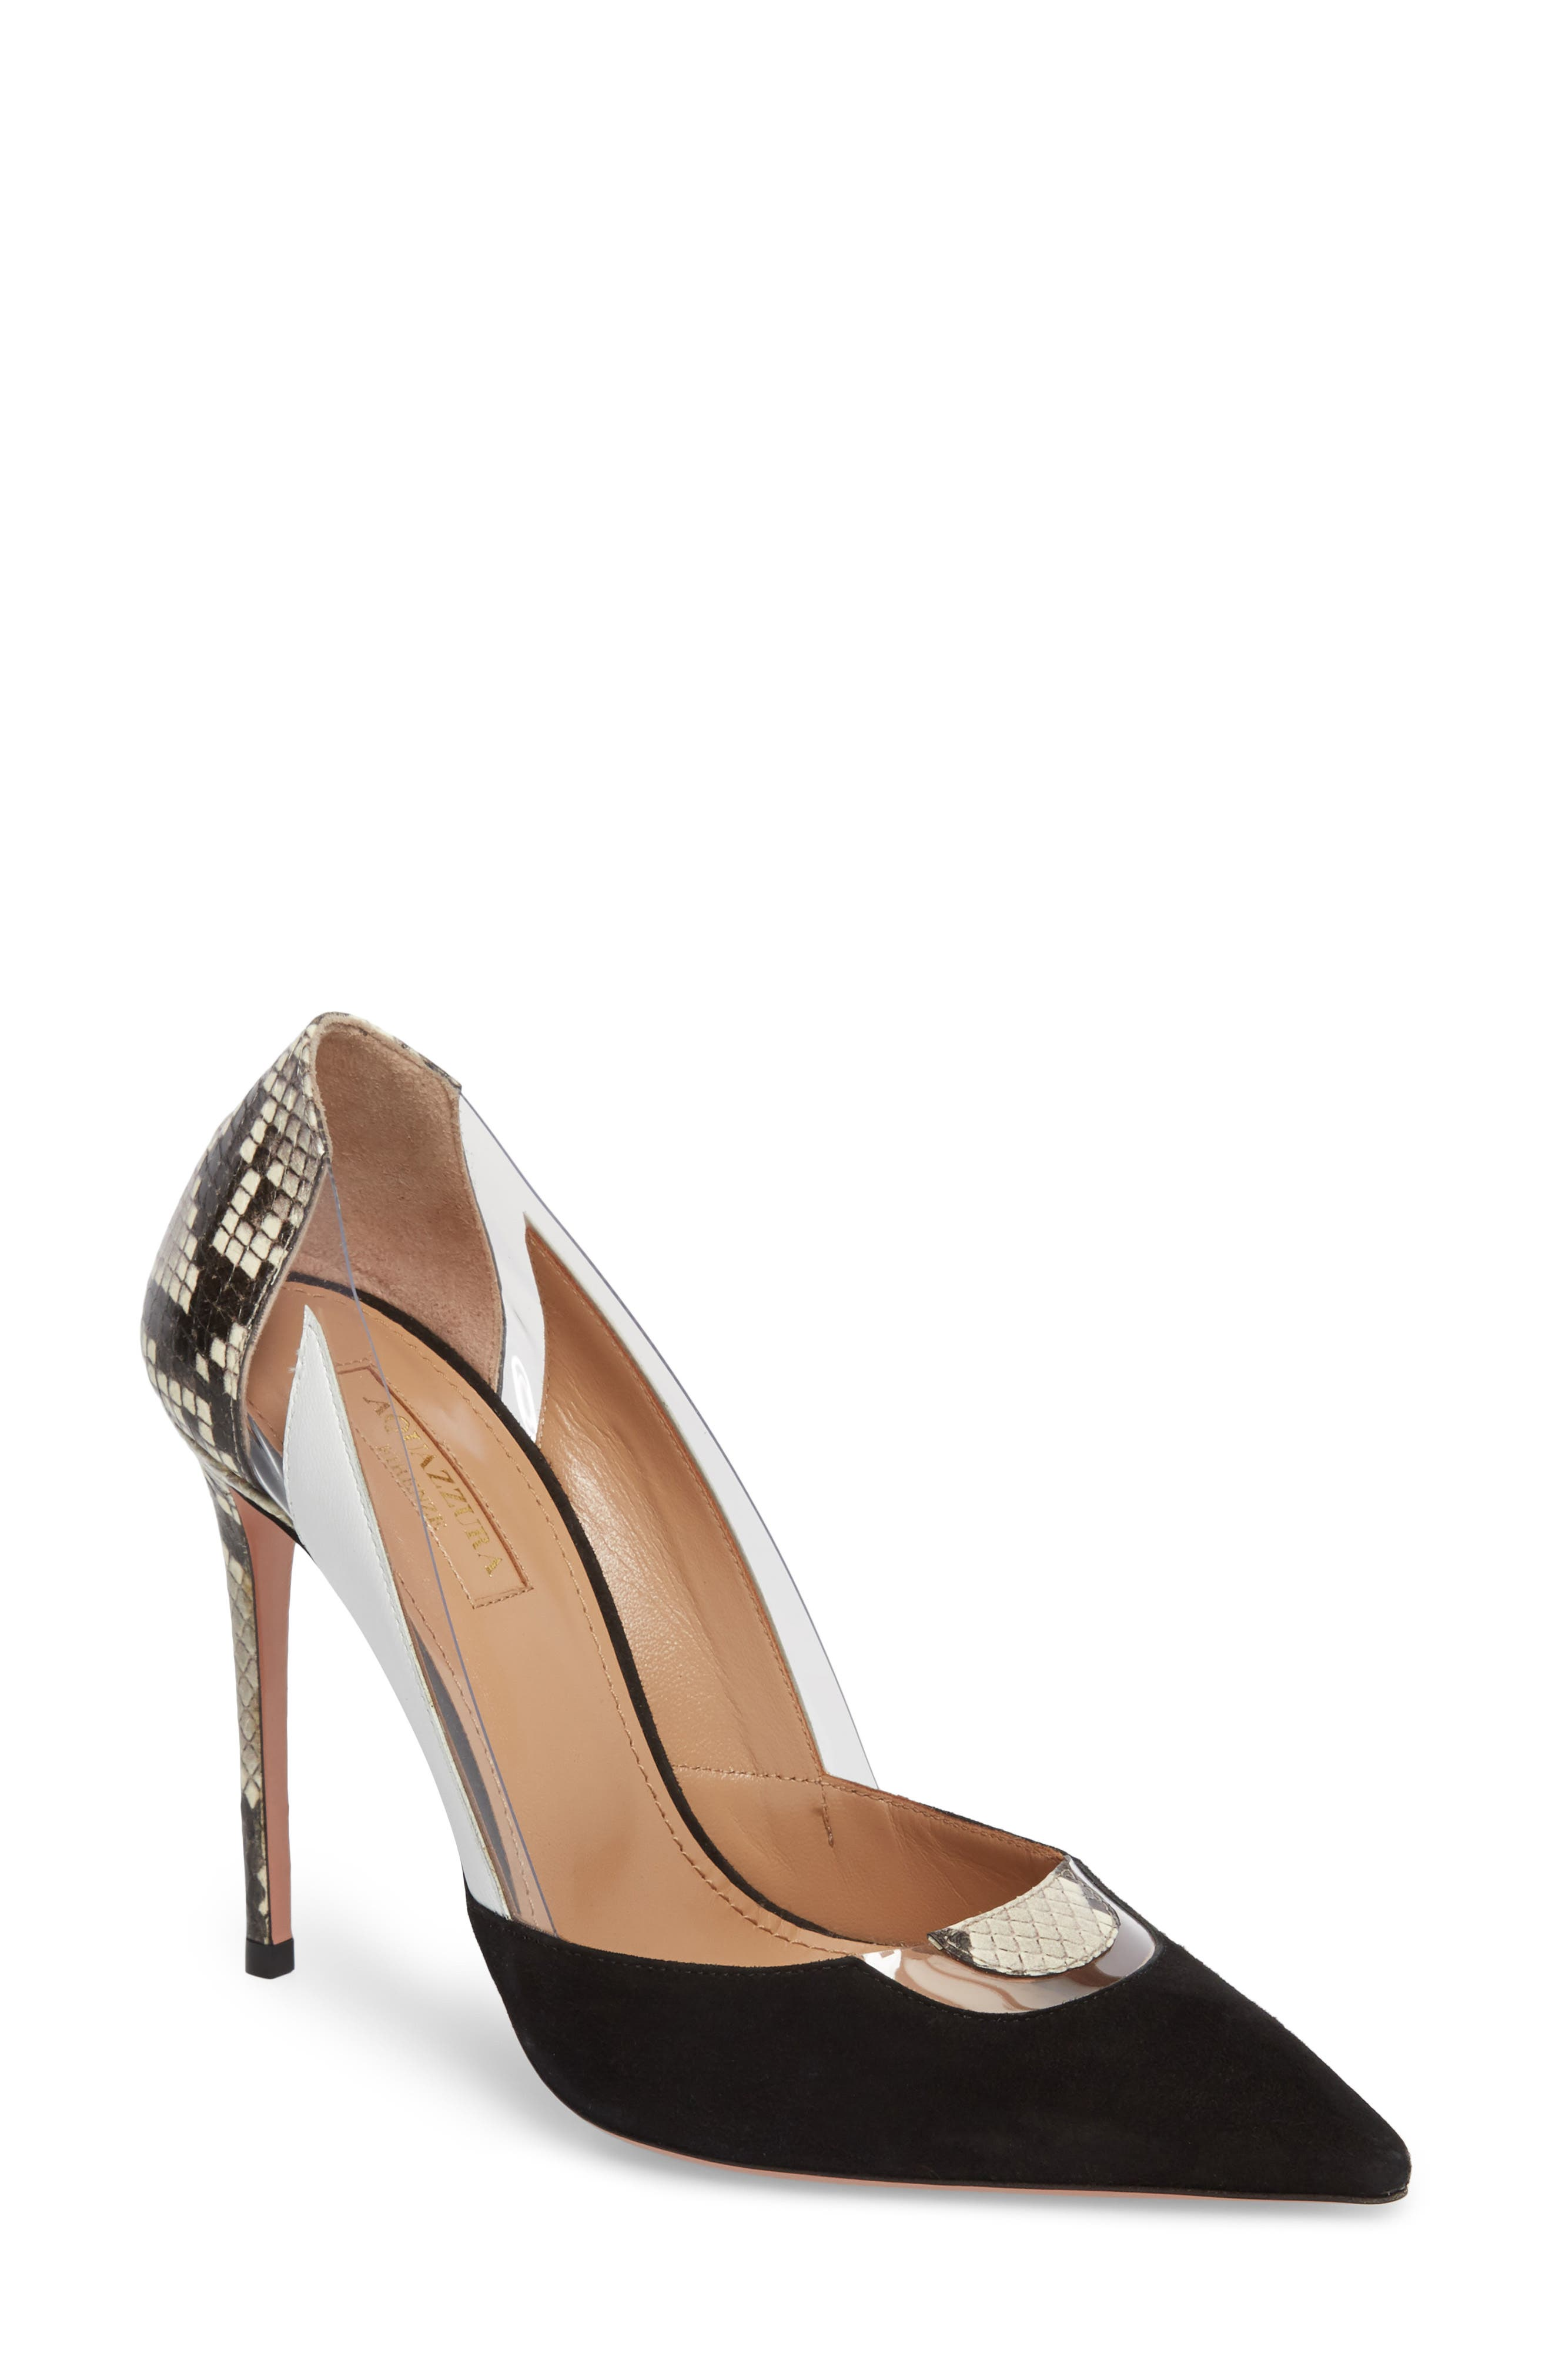 Aquazurra Fearless Genuine Snakeskin Pointy Toe Pump,                         Main,                         color, Black/ Snakeprint